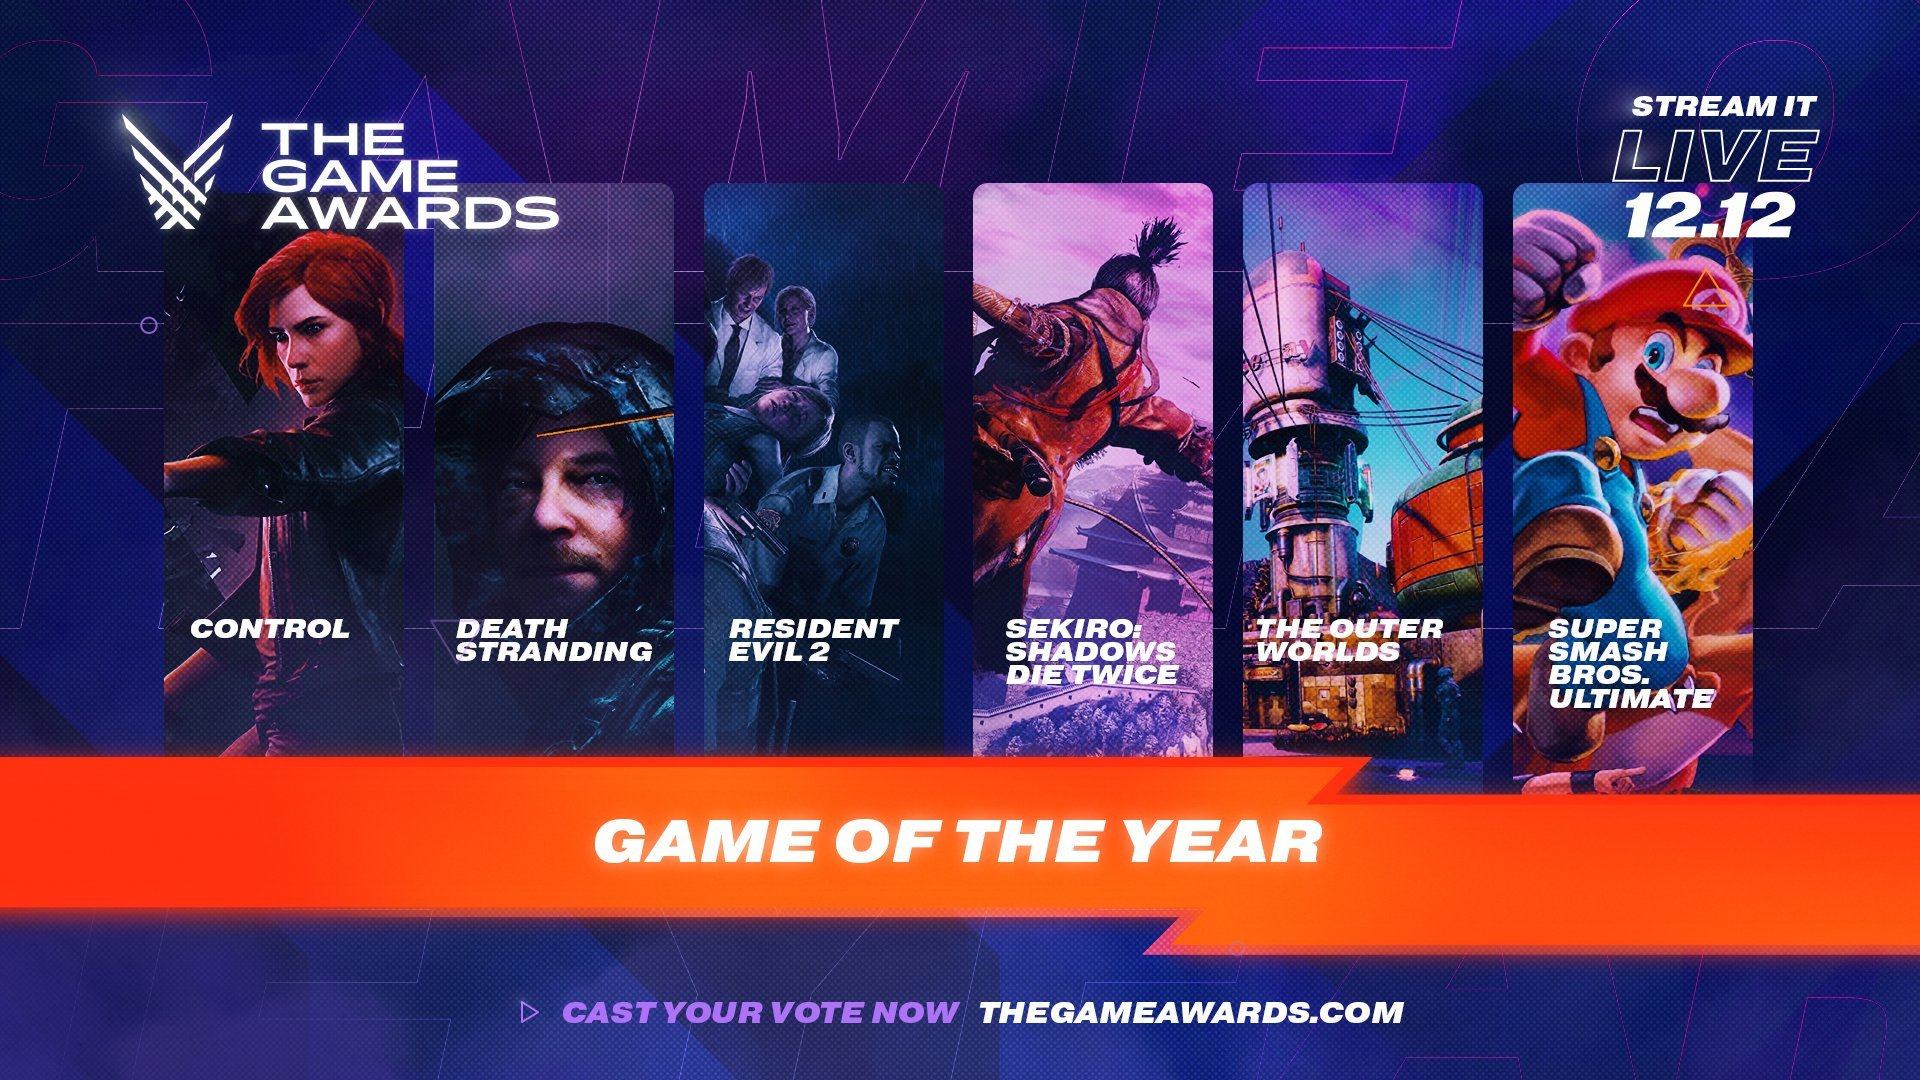 10 new projects to be revealed at The Game Awards